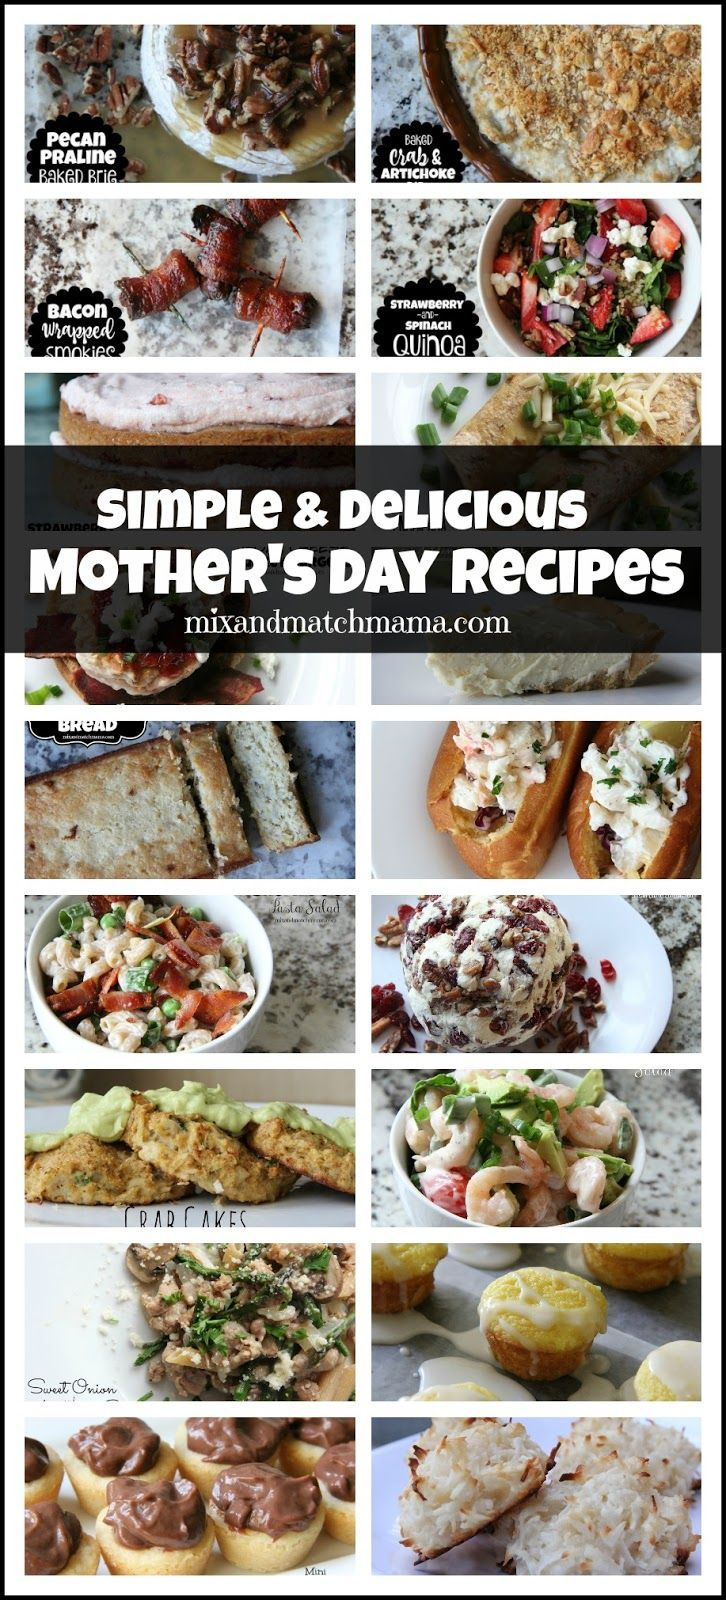 Simple & Delicious Mother's Day Recipes